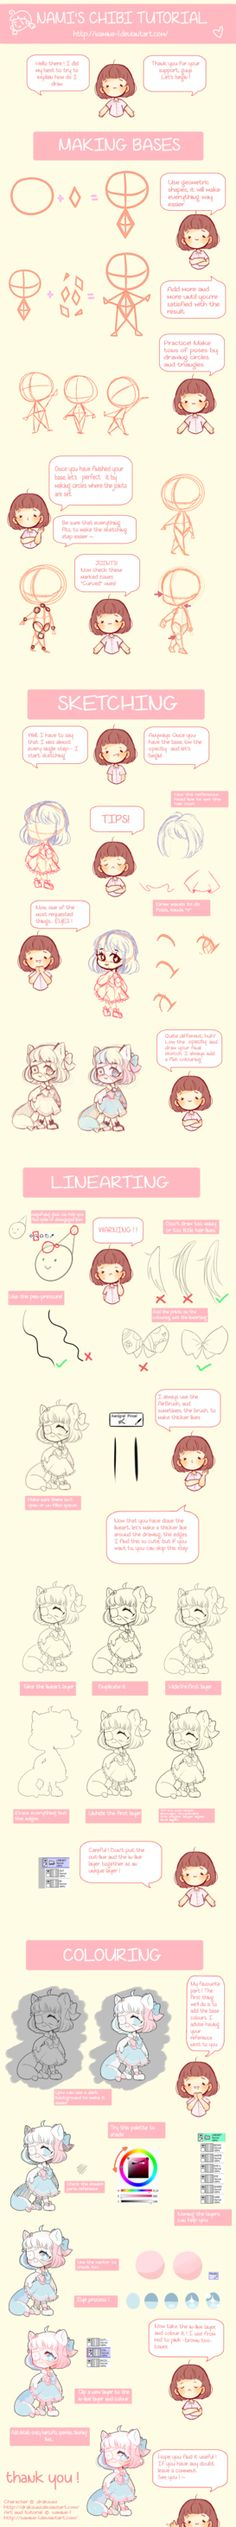 ULTIMATE CHIBI TUTORIAL by Namine-L on DeviantArt